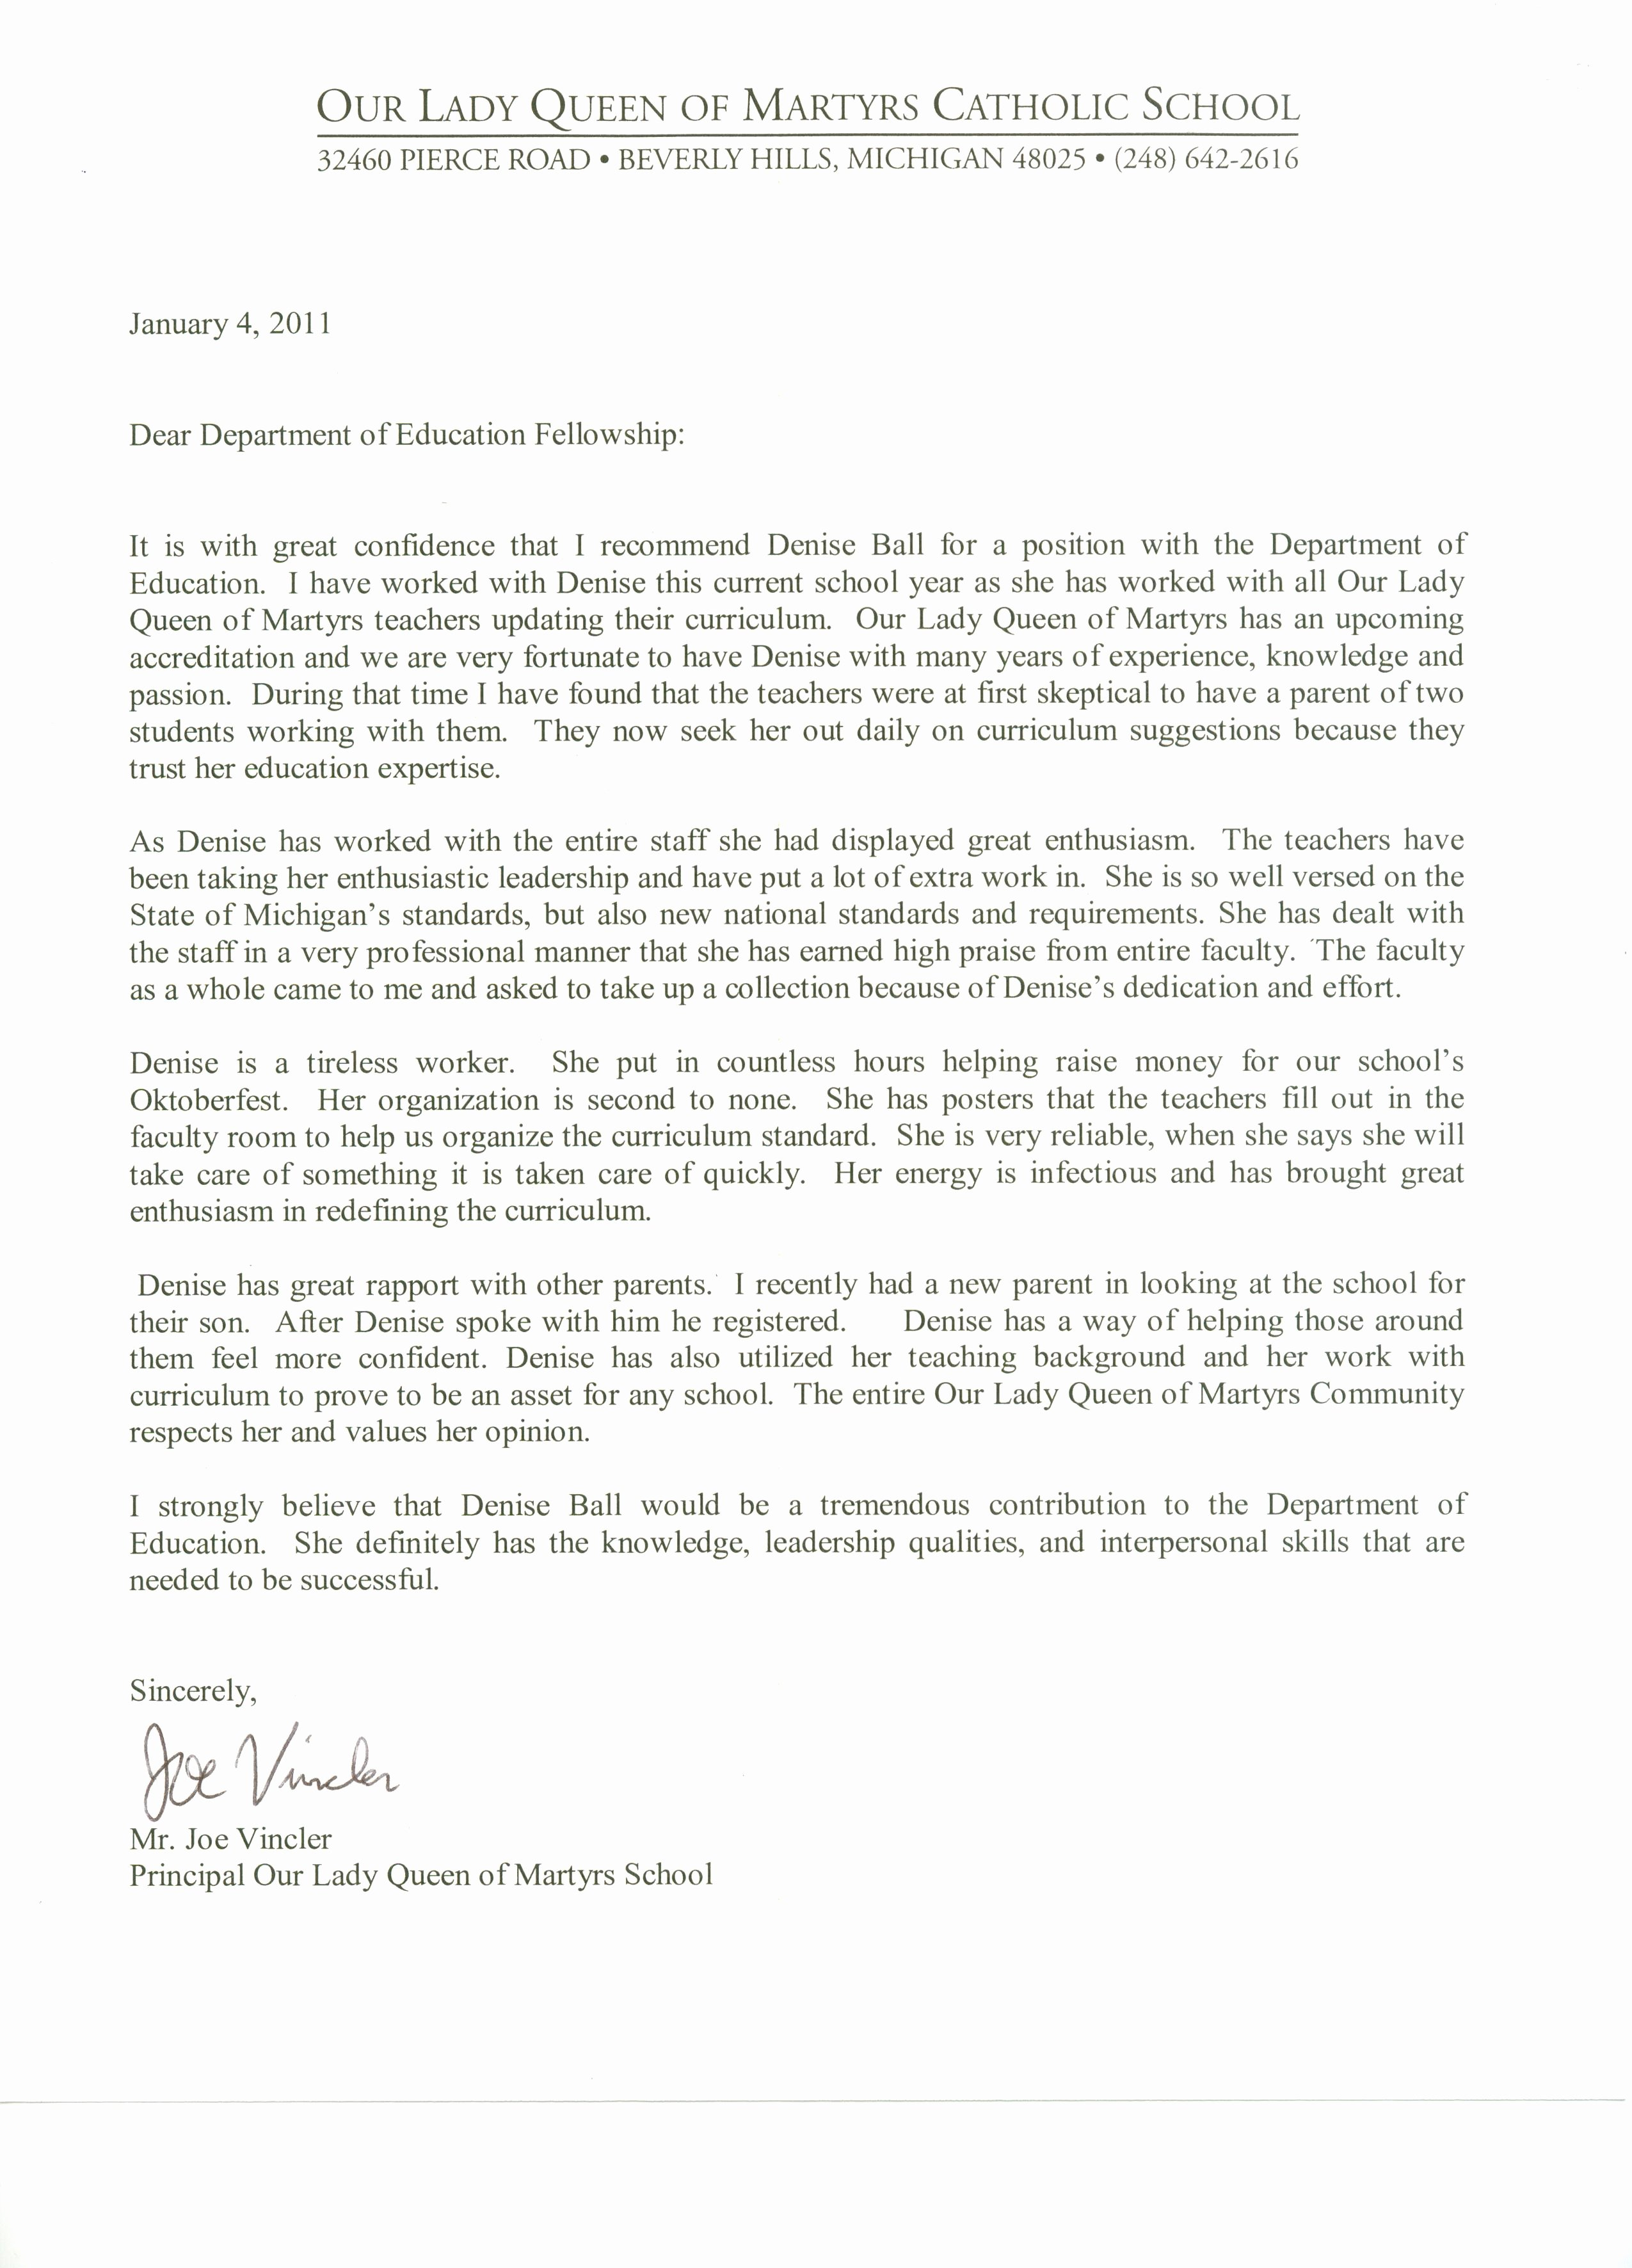 Nurse Practitioner Letter Of Recommendation Fresh Letter Of Re Mendation for Denise Ball